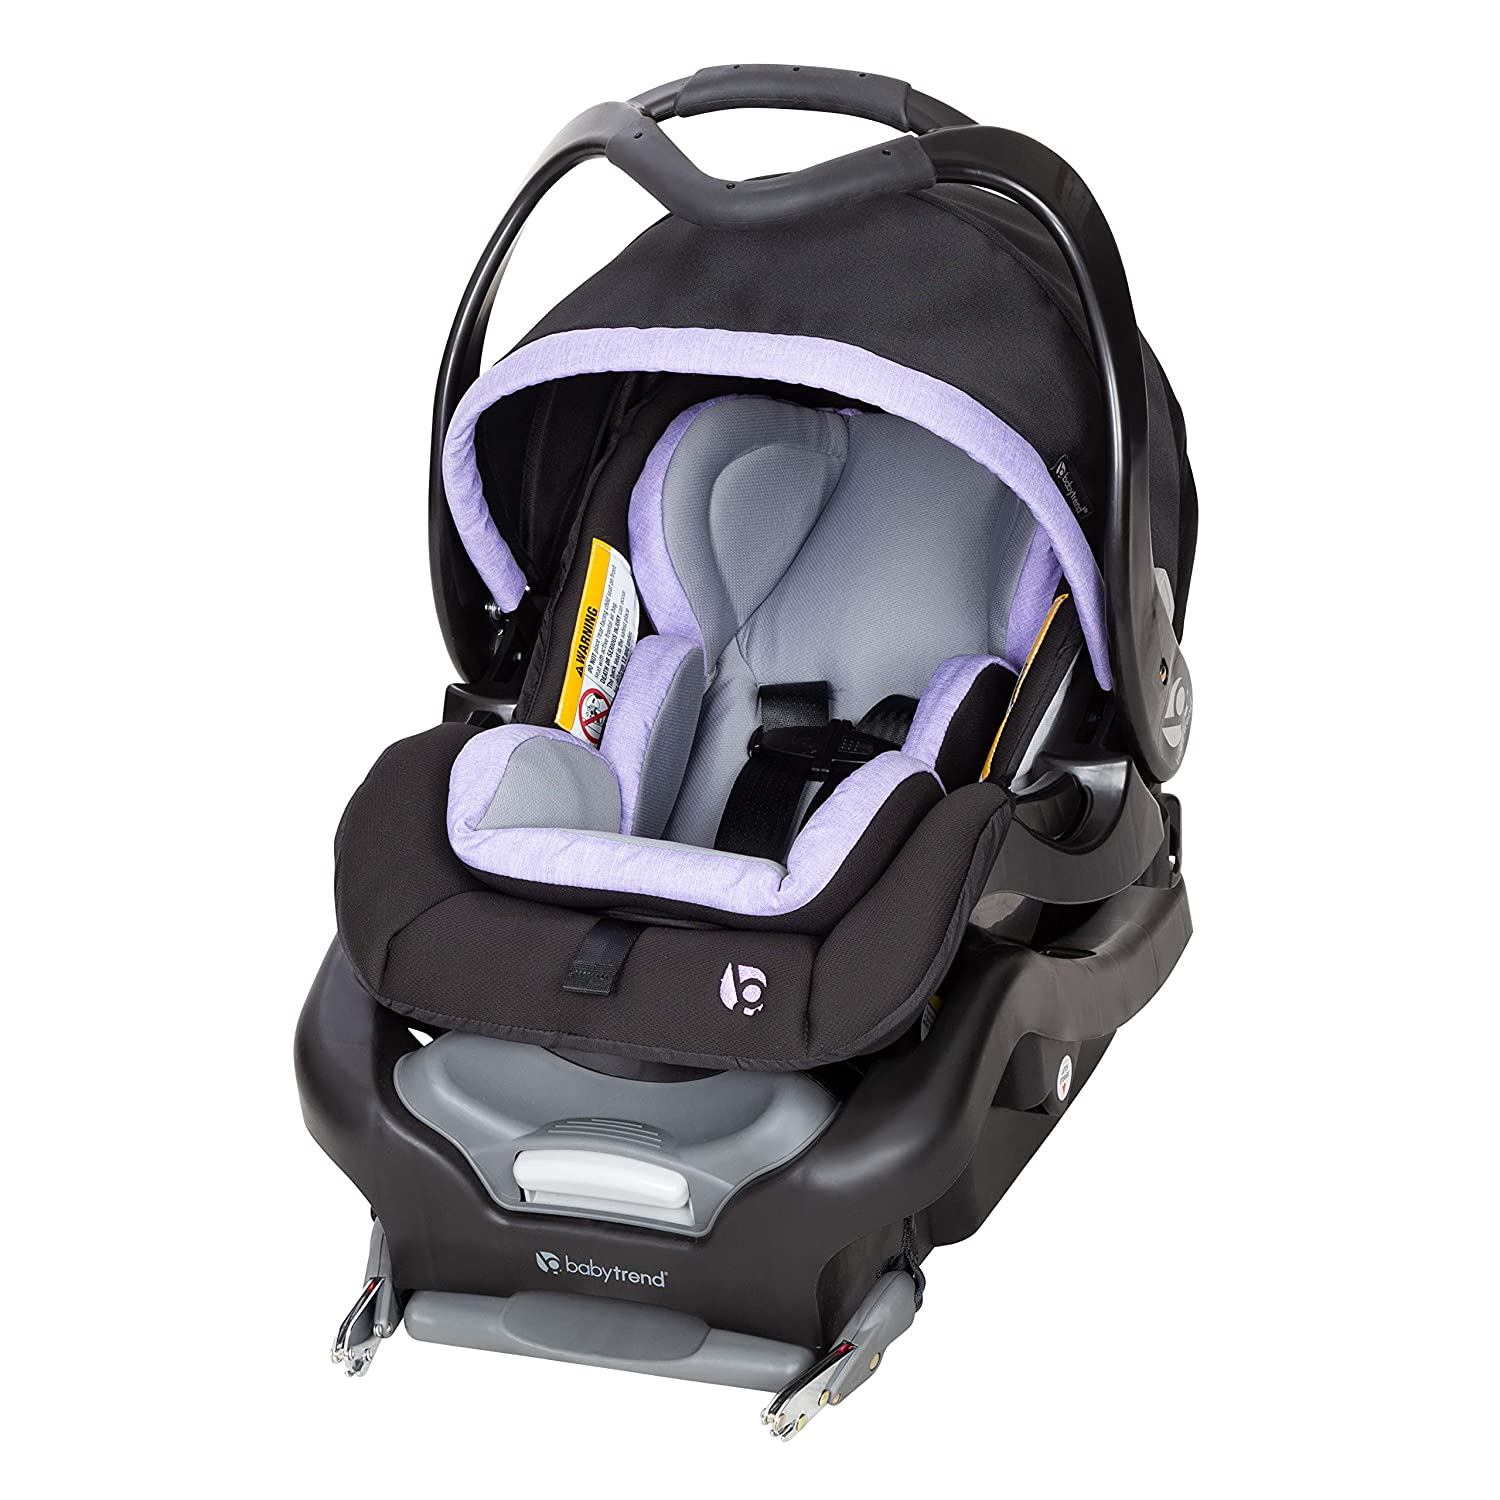 Baby Trend Secure Snap Tech 35 Infant Car Seat, Lavender Ice, Lavender Ice CS66C49B